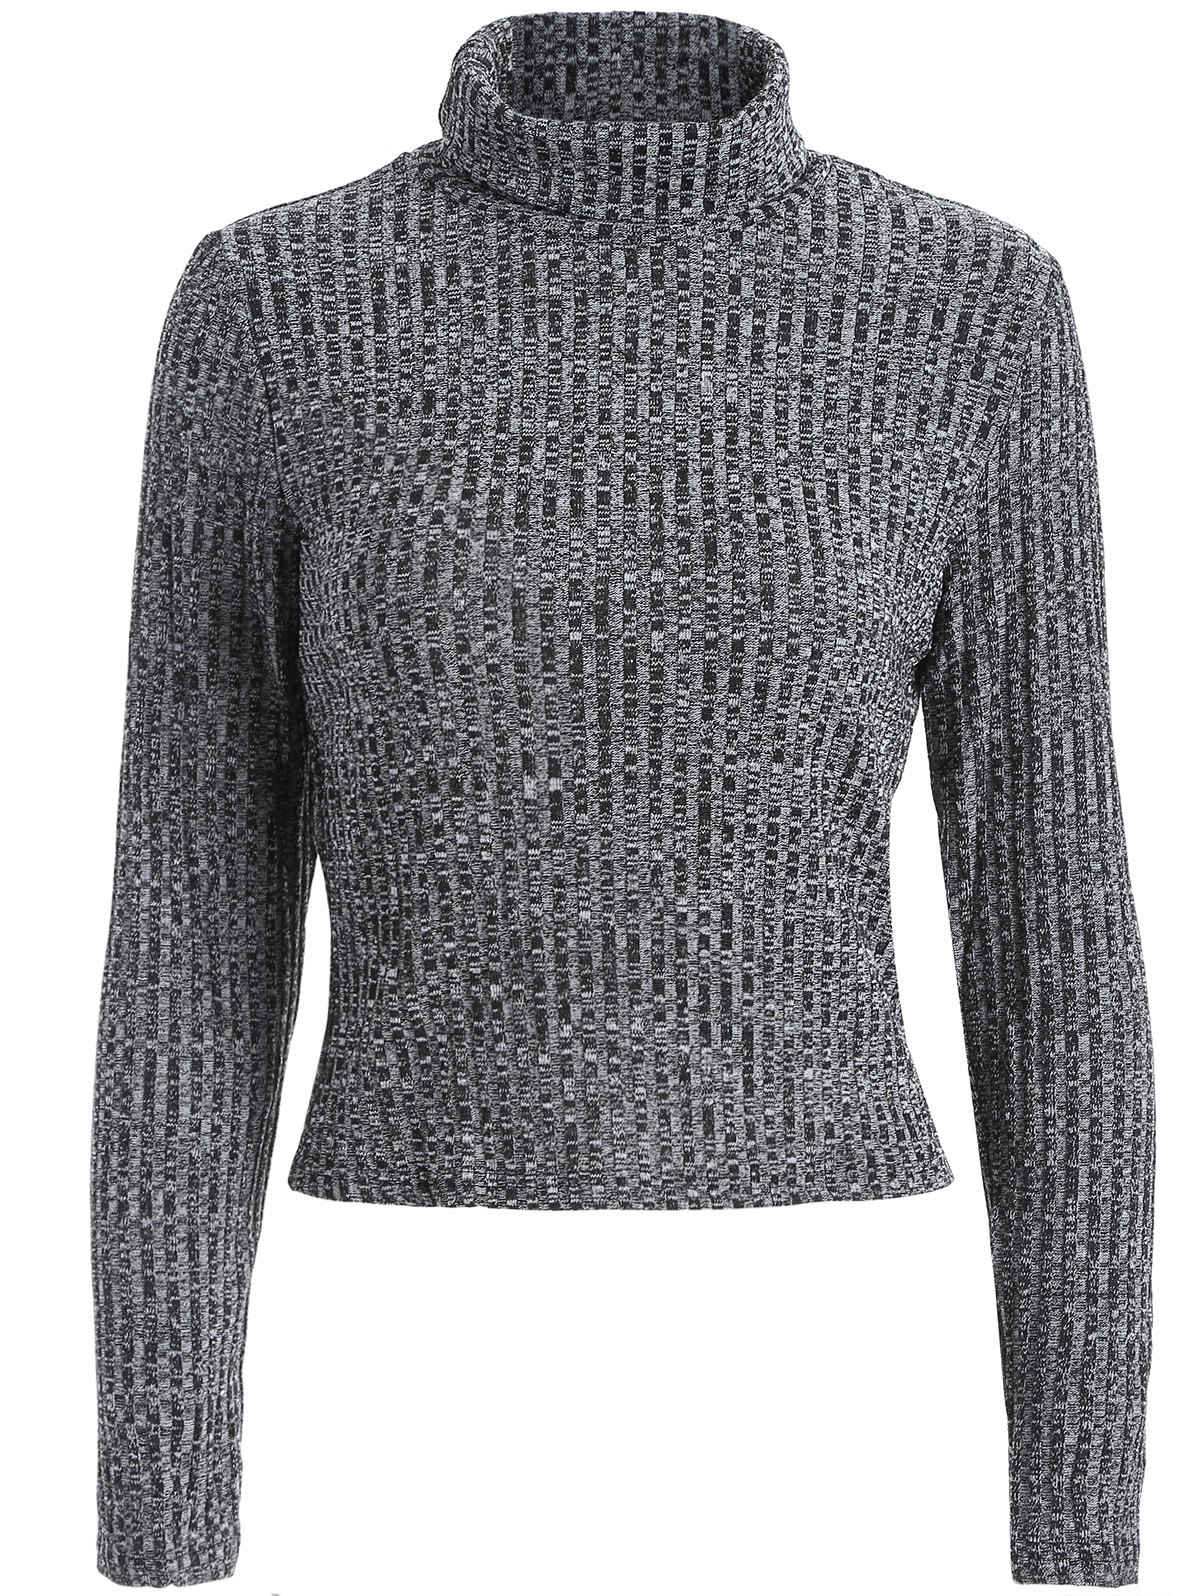 Turtleneck Cropped Heathered SweaterWomen<br><br><br>Size: XL<br>Color: GRAY